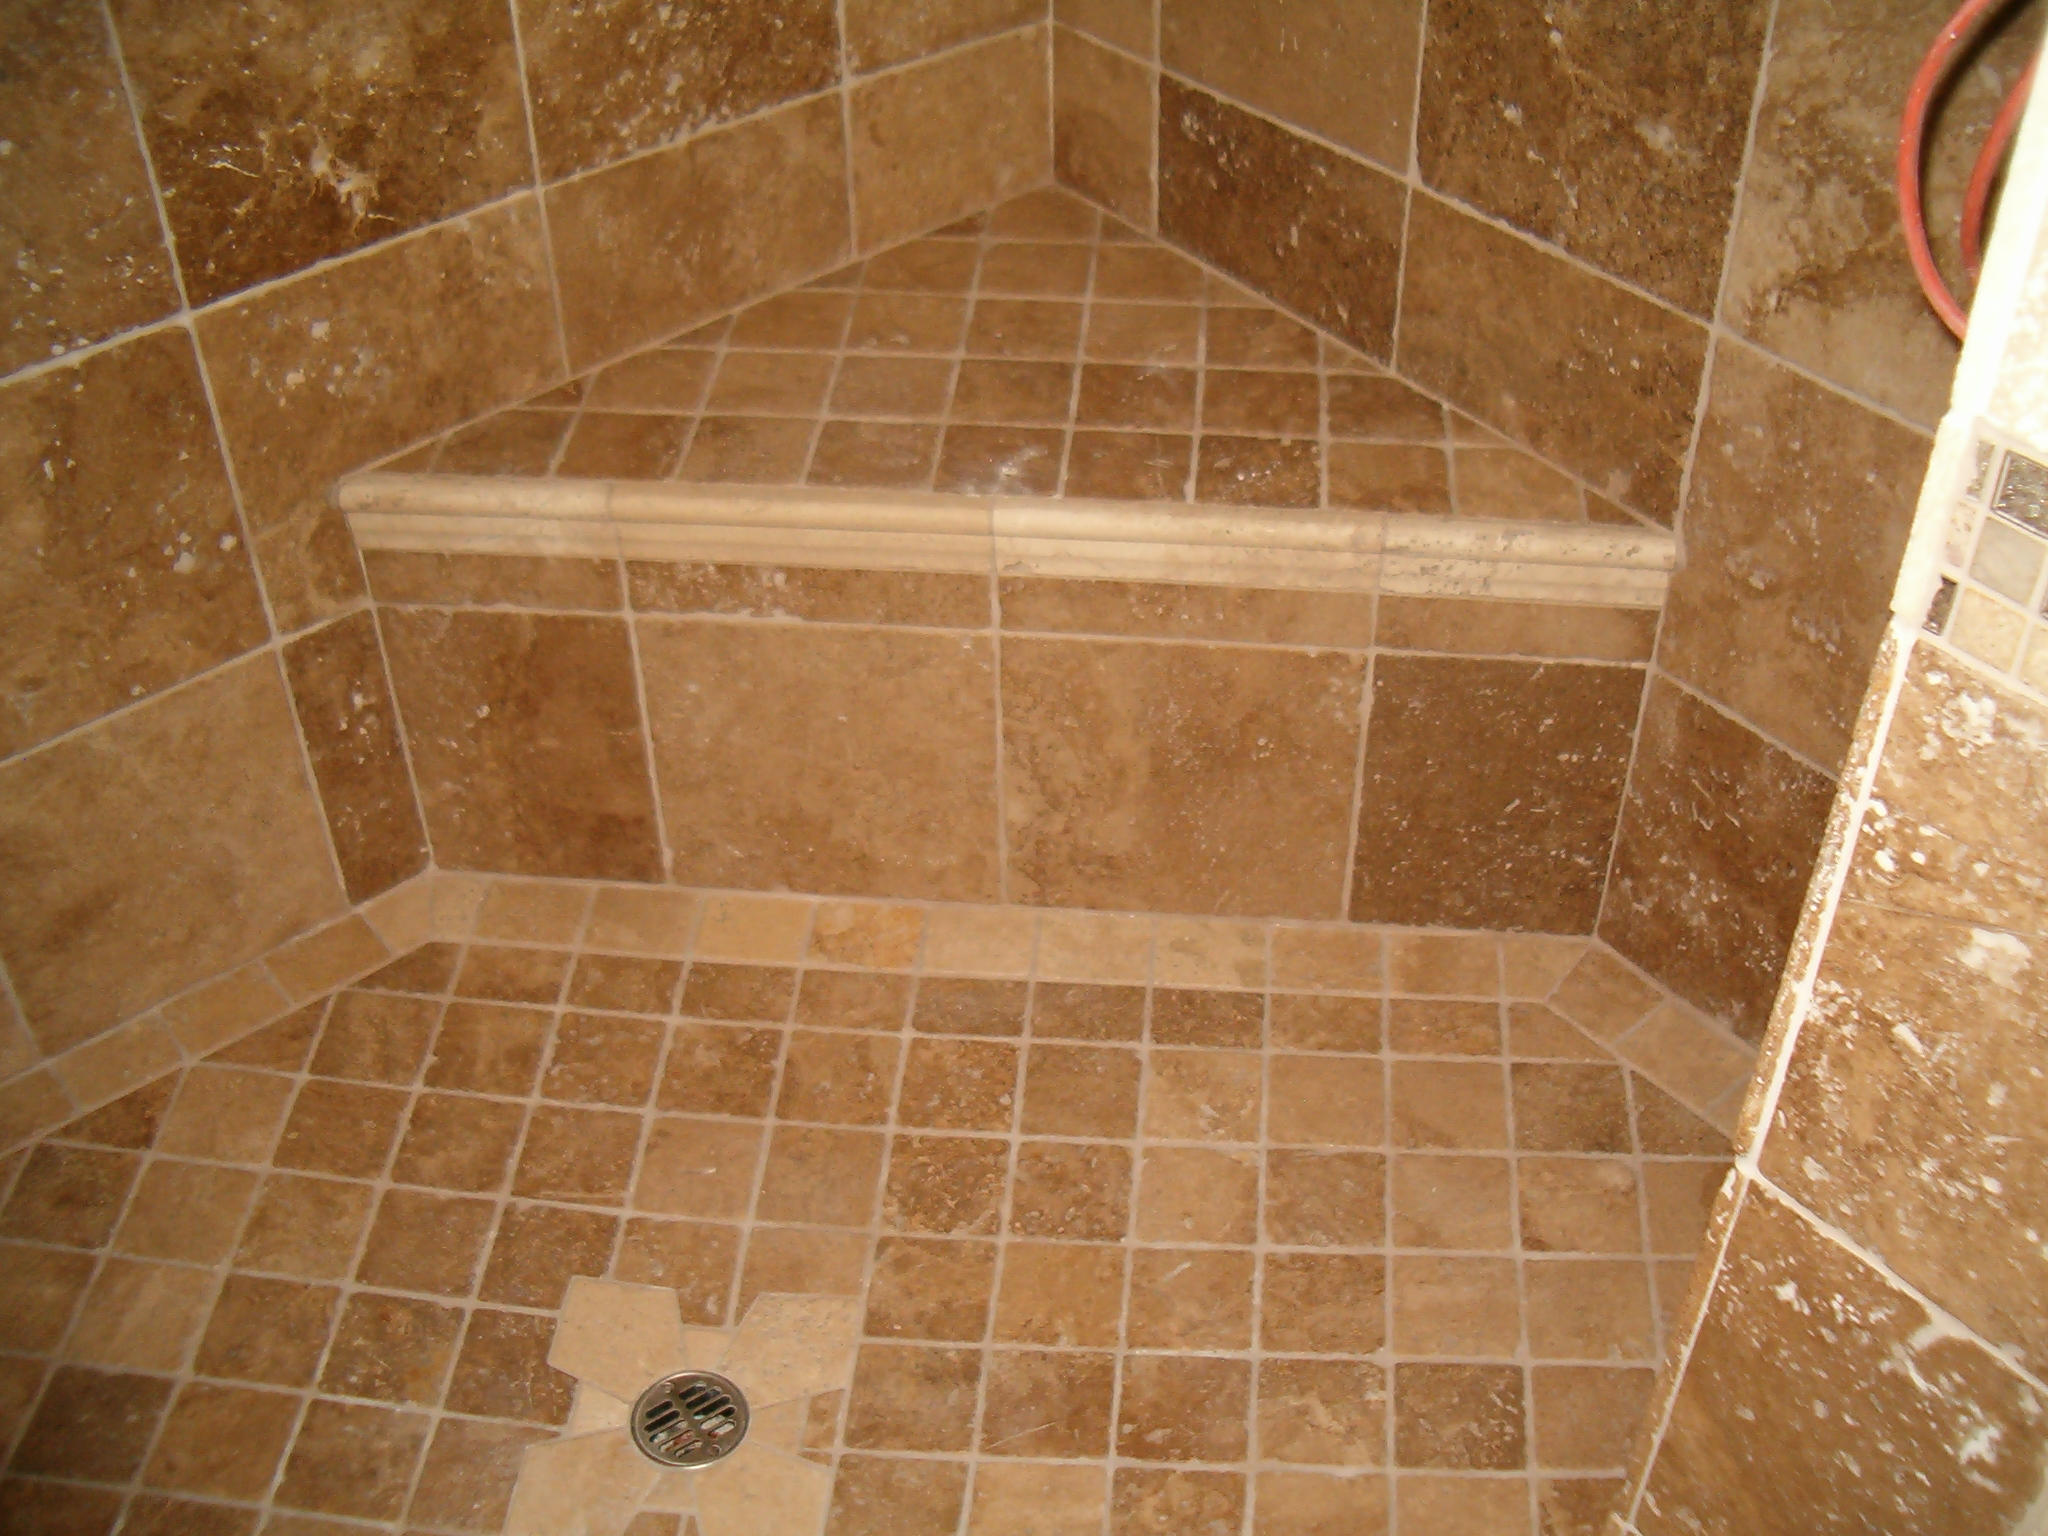 Shower anatomy for Bathroom tiles design